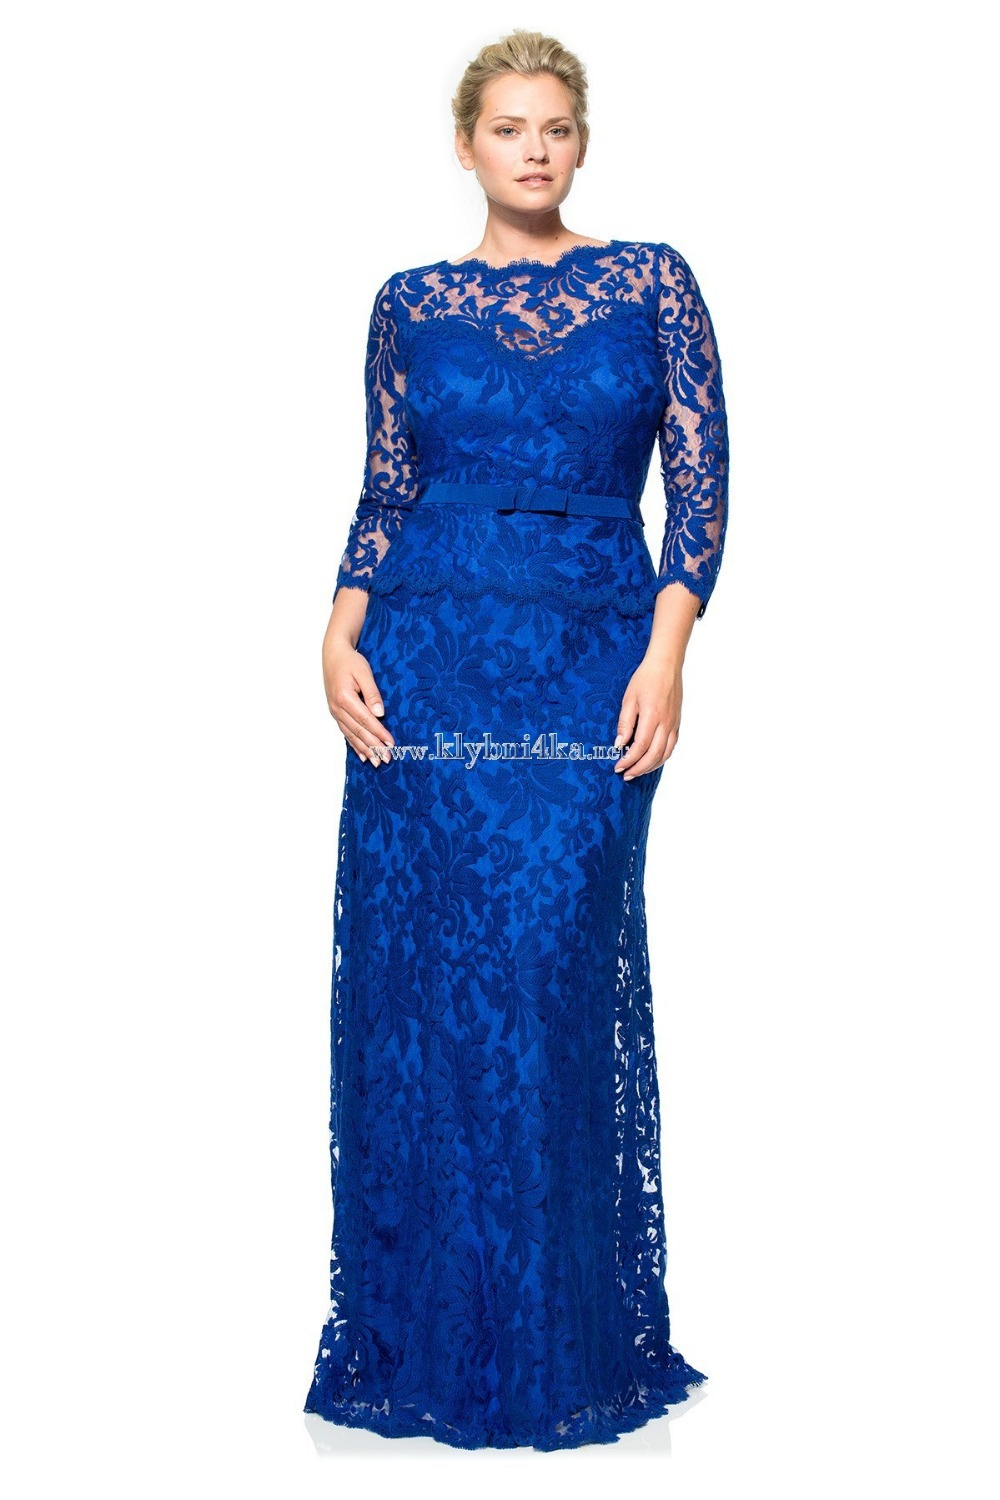 Royal Blue Elegant Sheath Long Sleeve Formal Evening Gown Women Sheer Top Waist Ribbon Party 2018 Mother Of The Bride Dresses